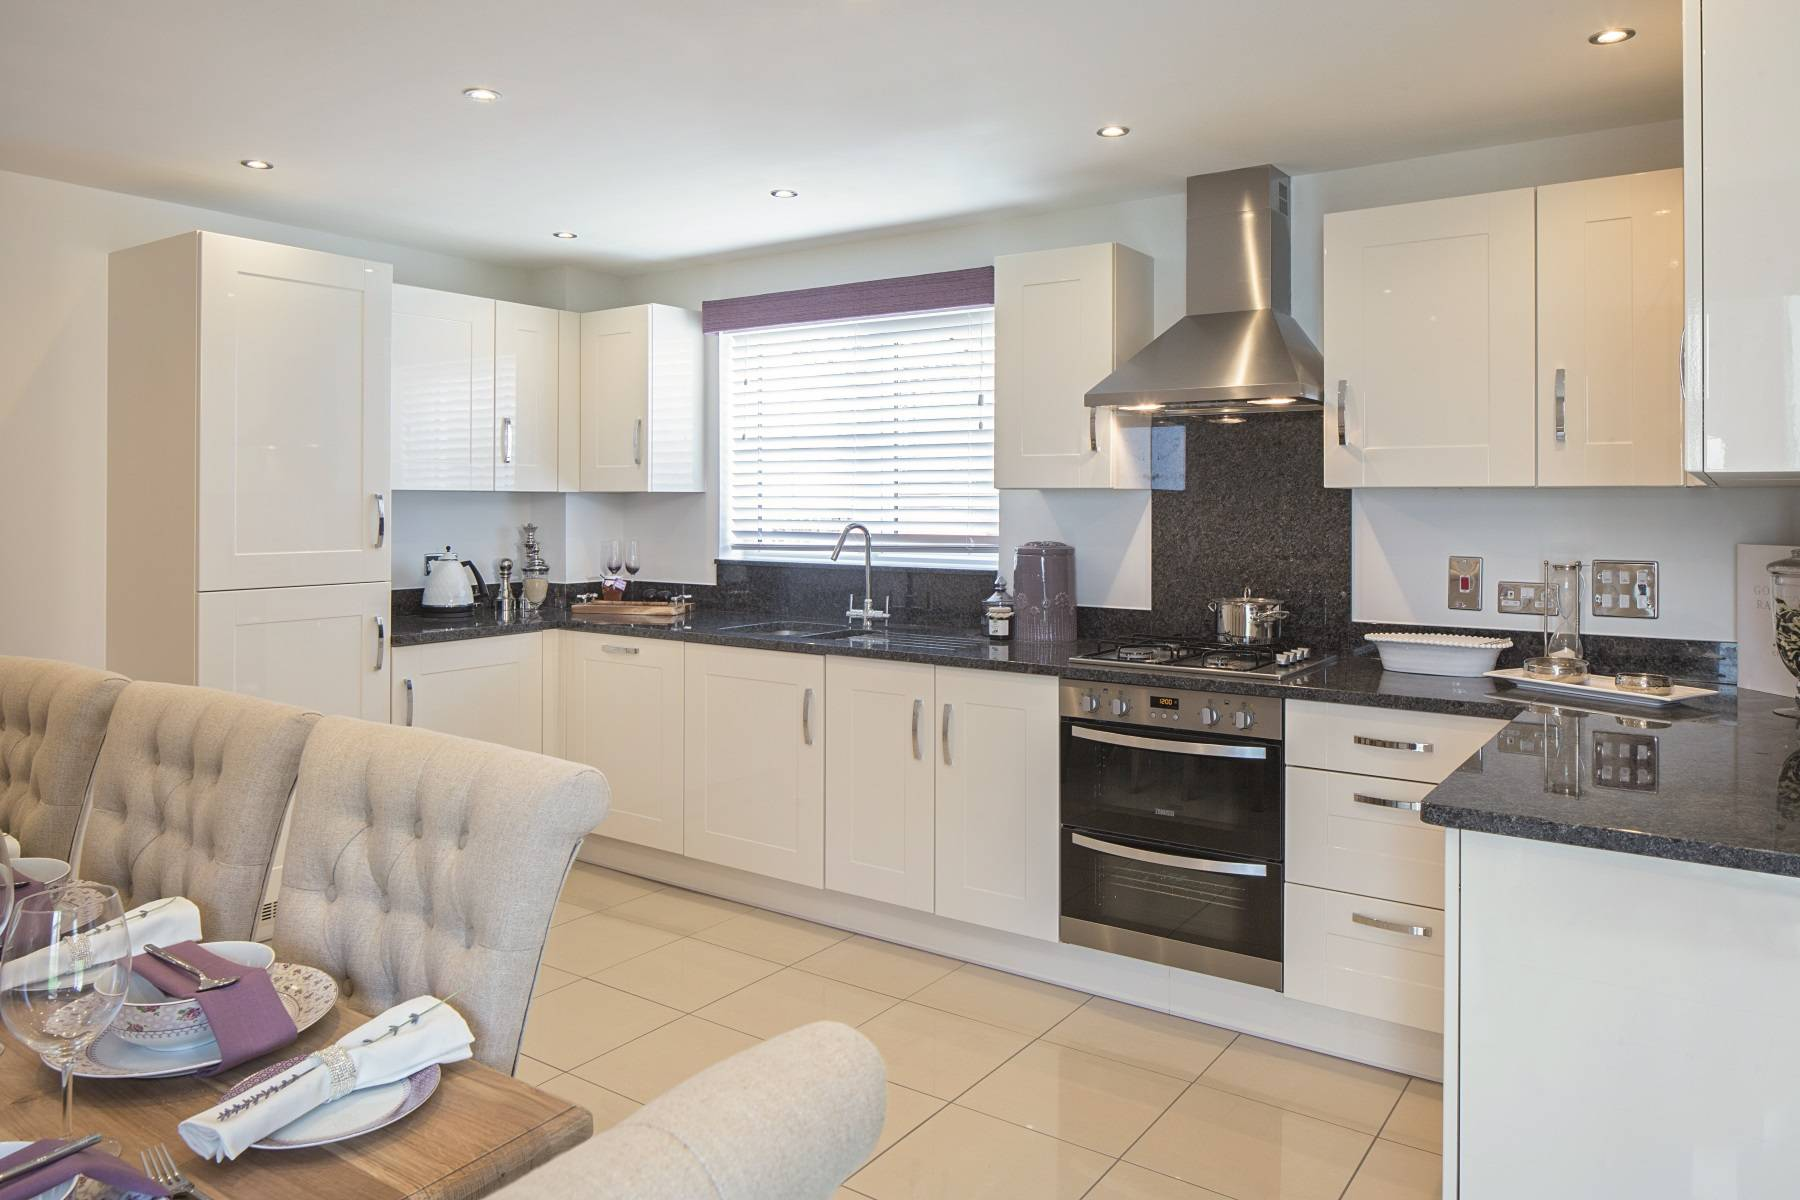 TW Exeter - Copleston Heights - Bawden example kitchen